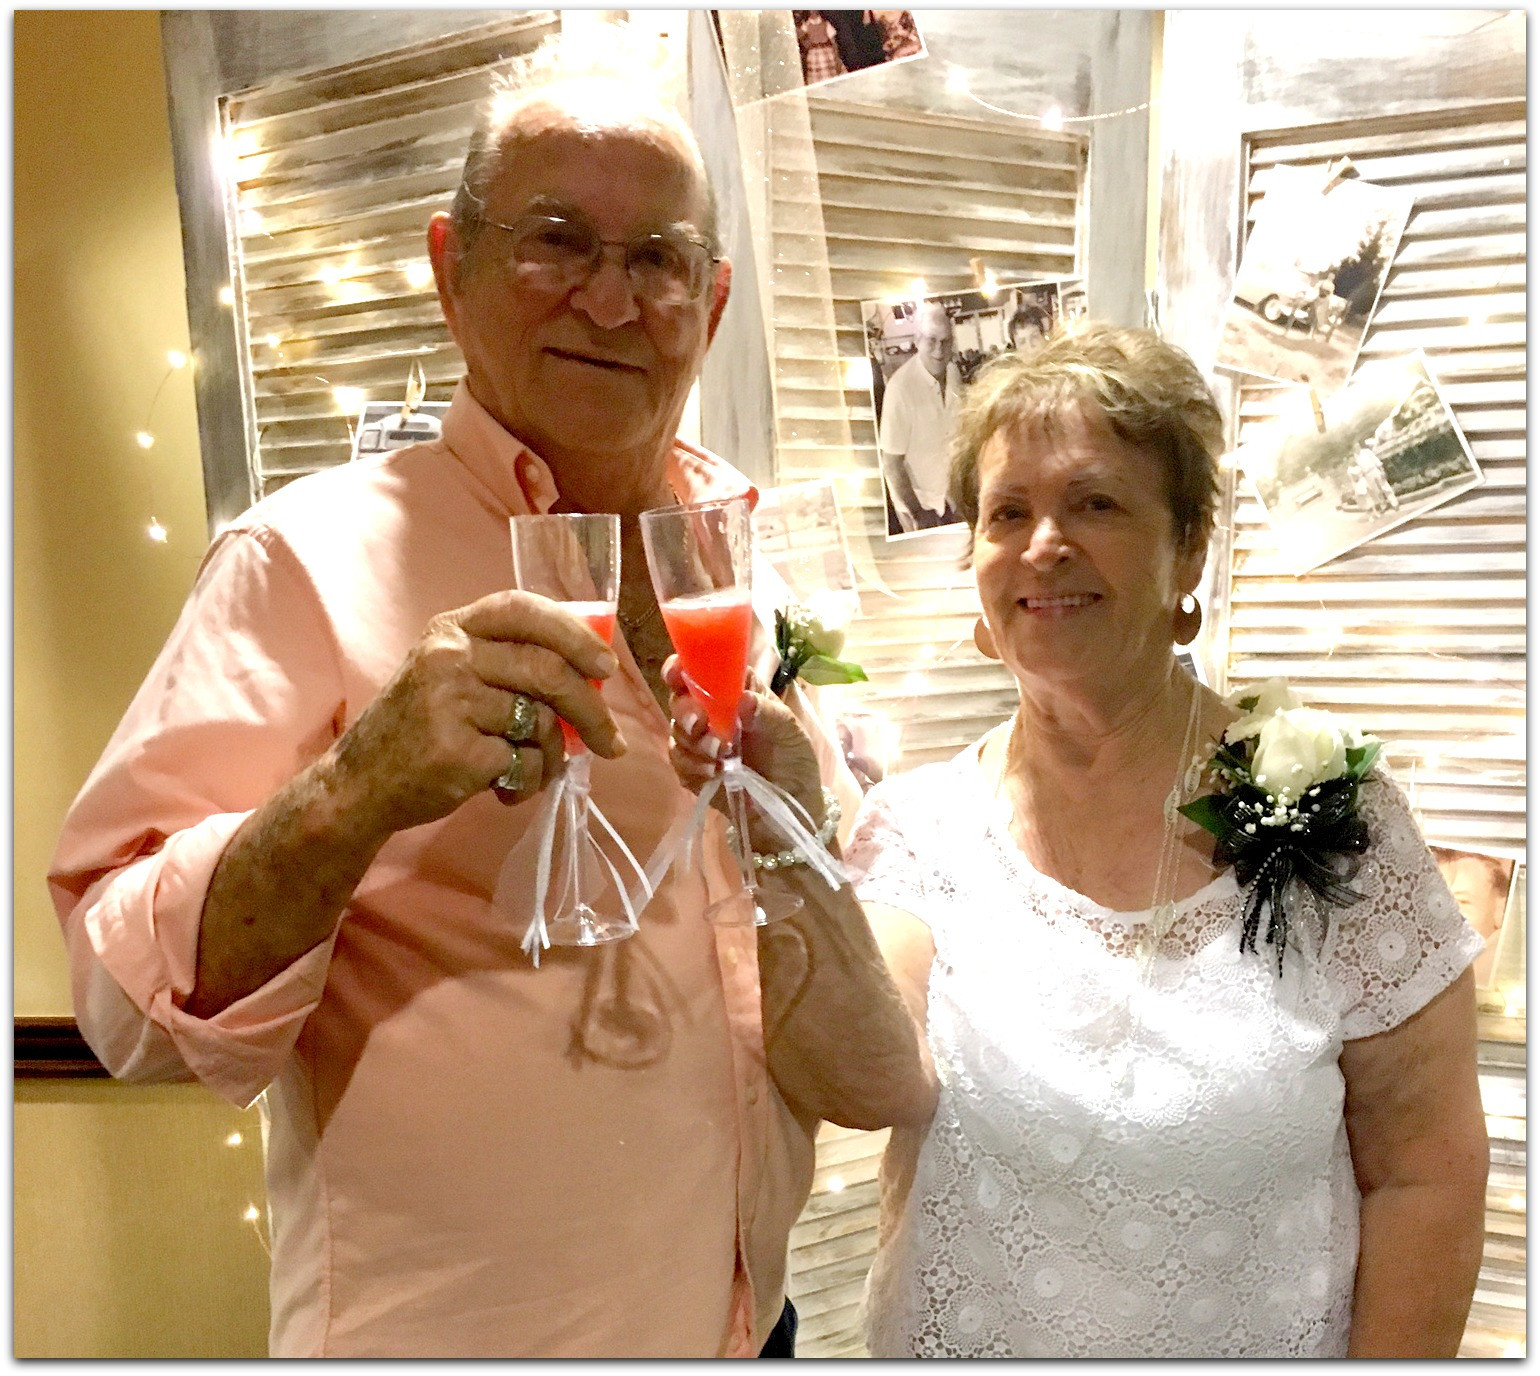 Gary and geraldine plummer celebrate 60 years of marriage for Acapulco golden tans salon owasso ok